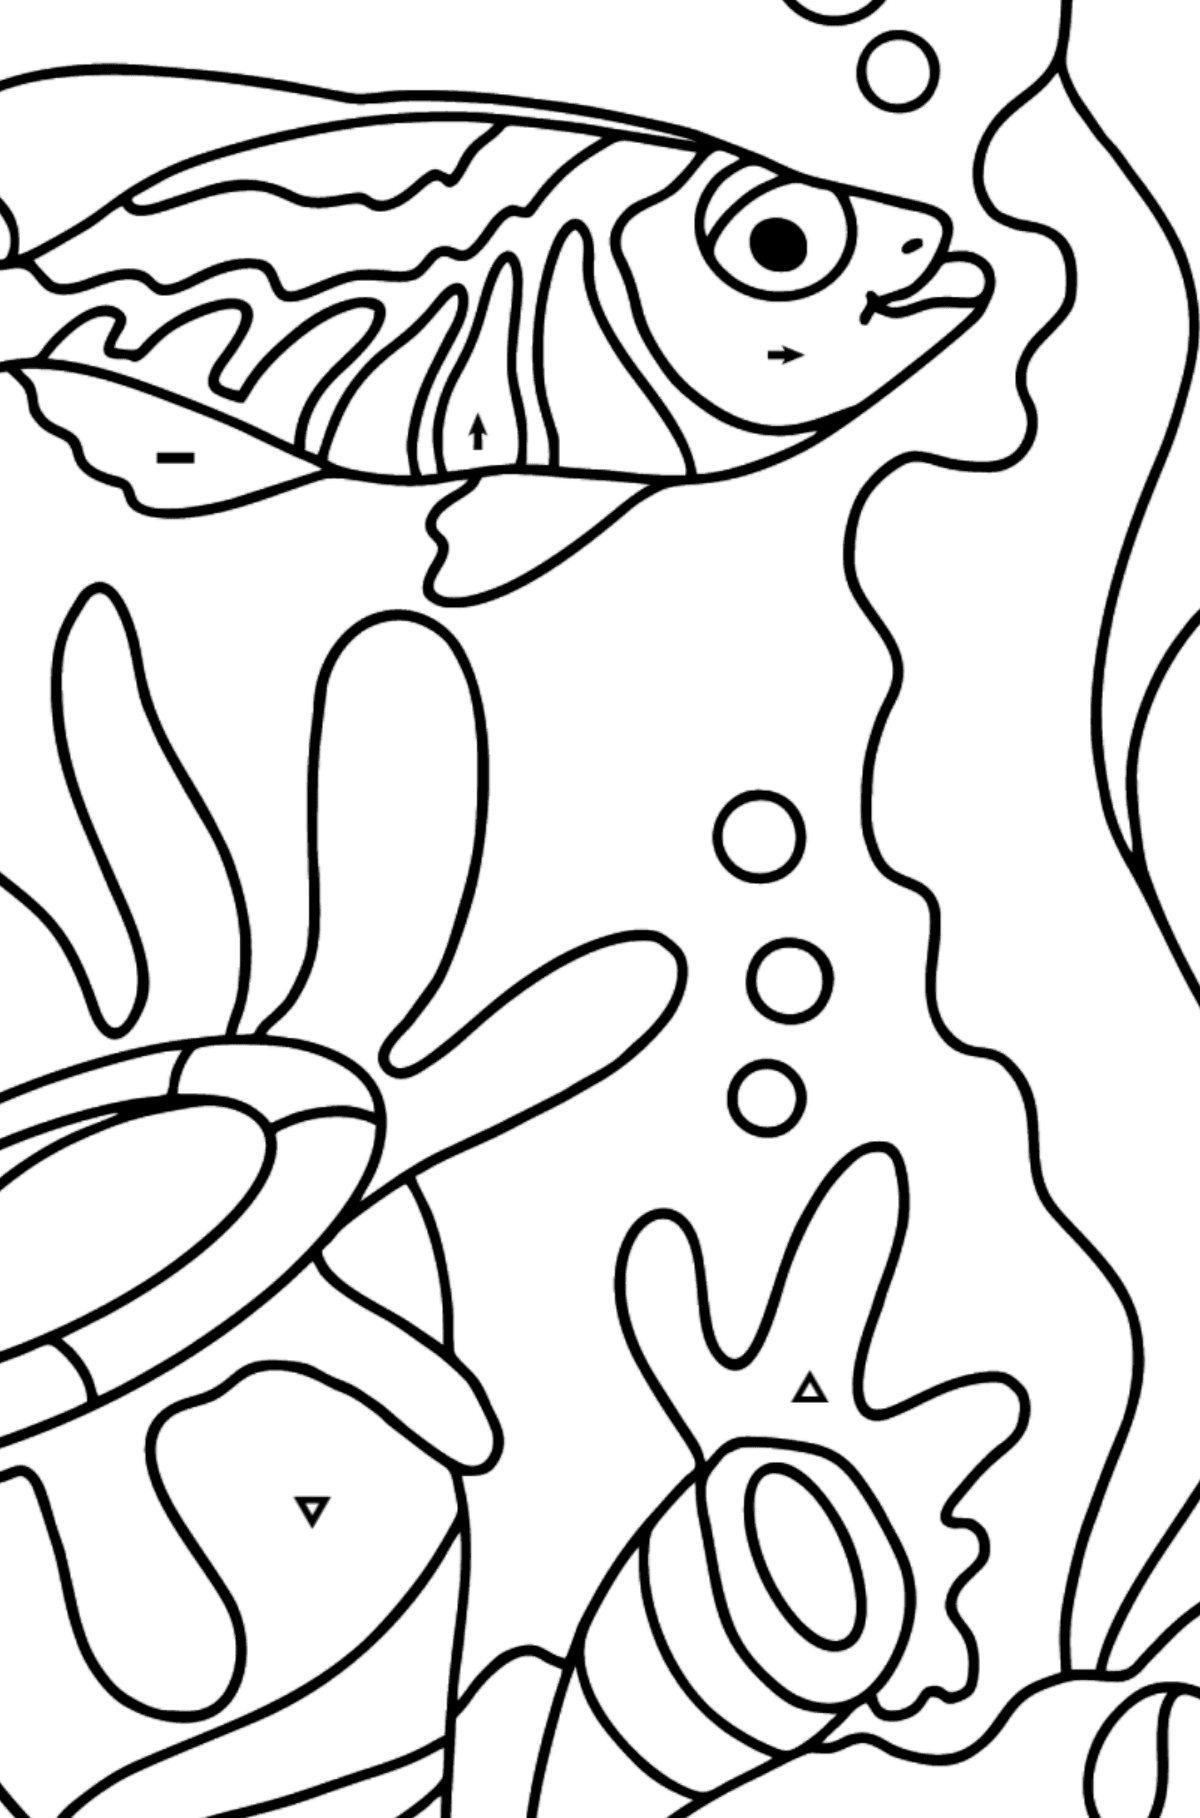 Coloring Page - A Fish is Watching the Corals Dreamily - Coloring by Symbols for Kids